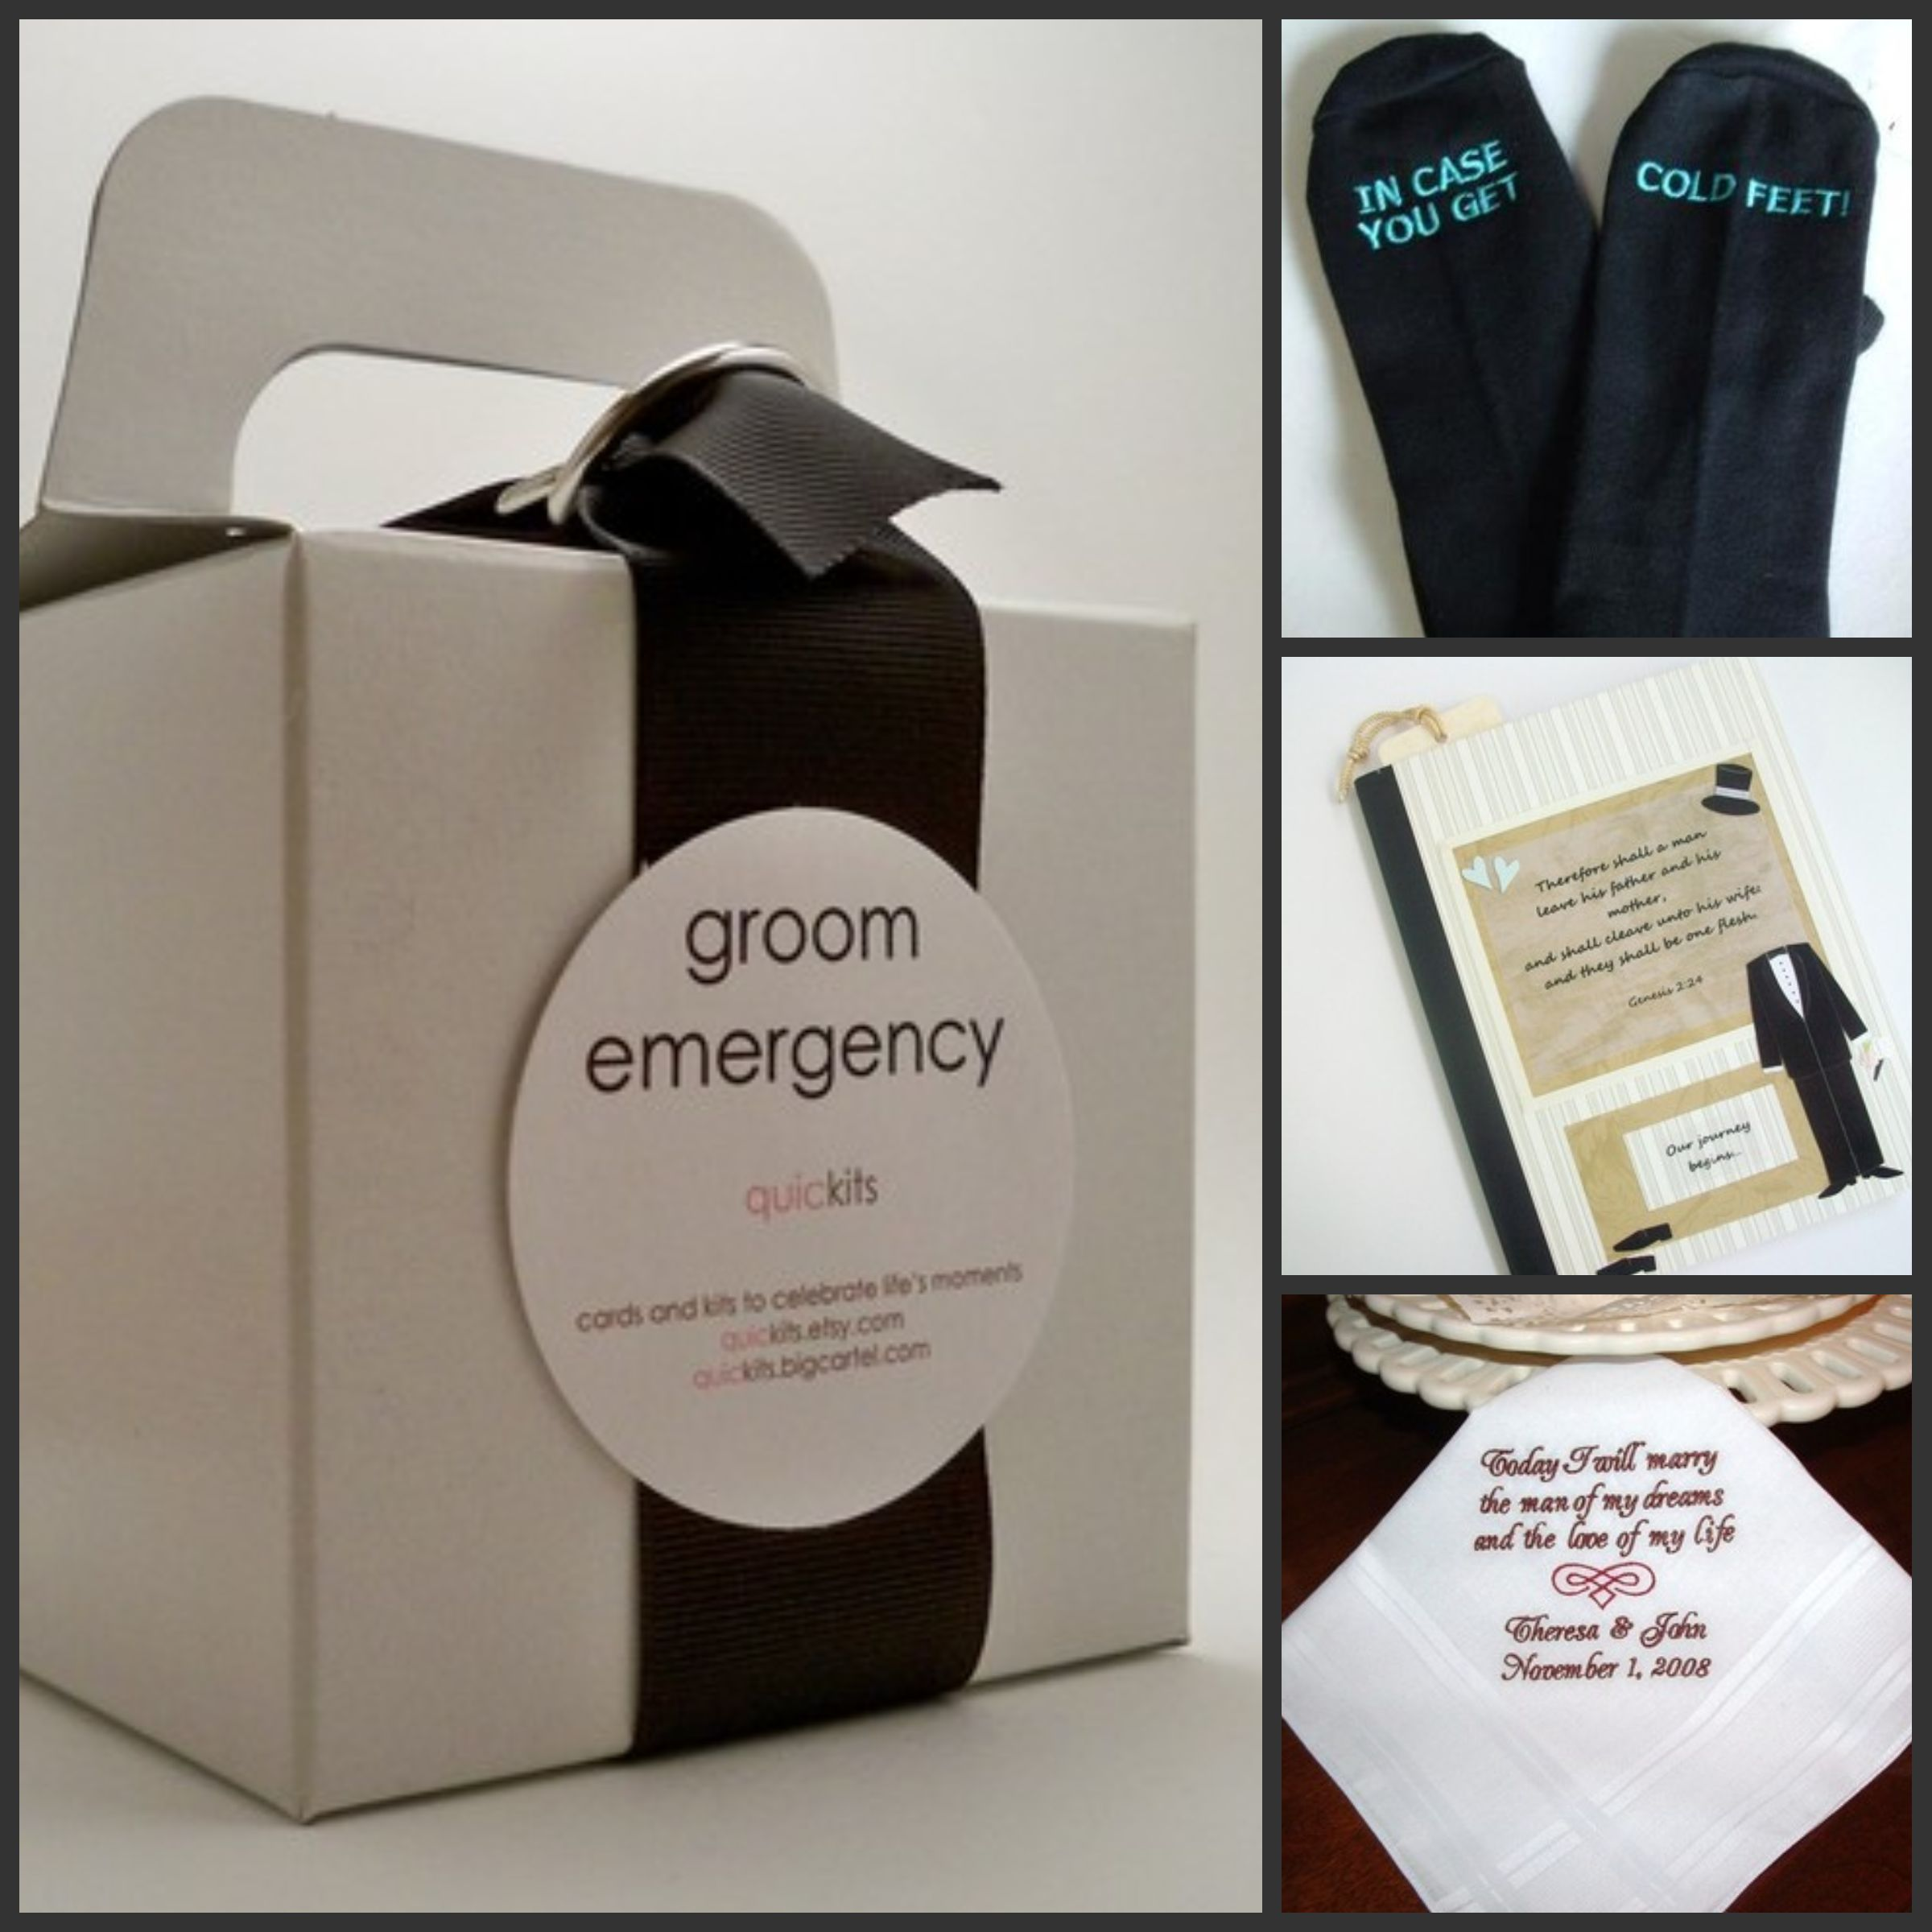 Customary Wedding Gift From Grooms Parents : personal gifts for your groom clockwise from left groom emergency kit ...